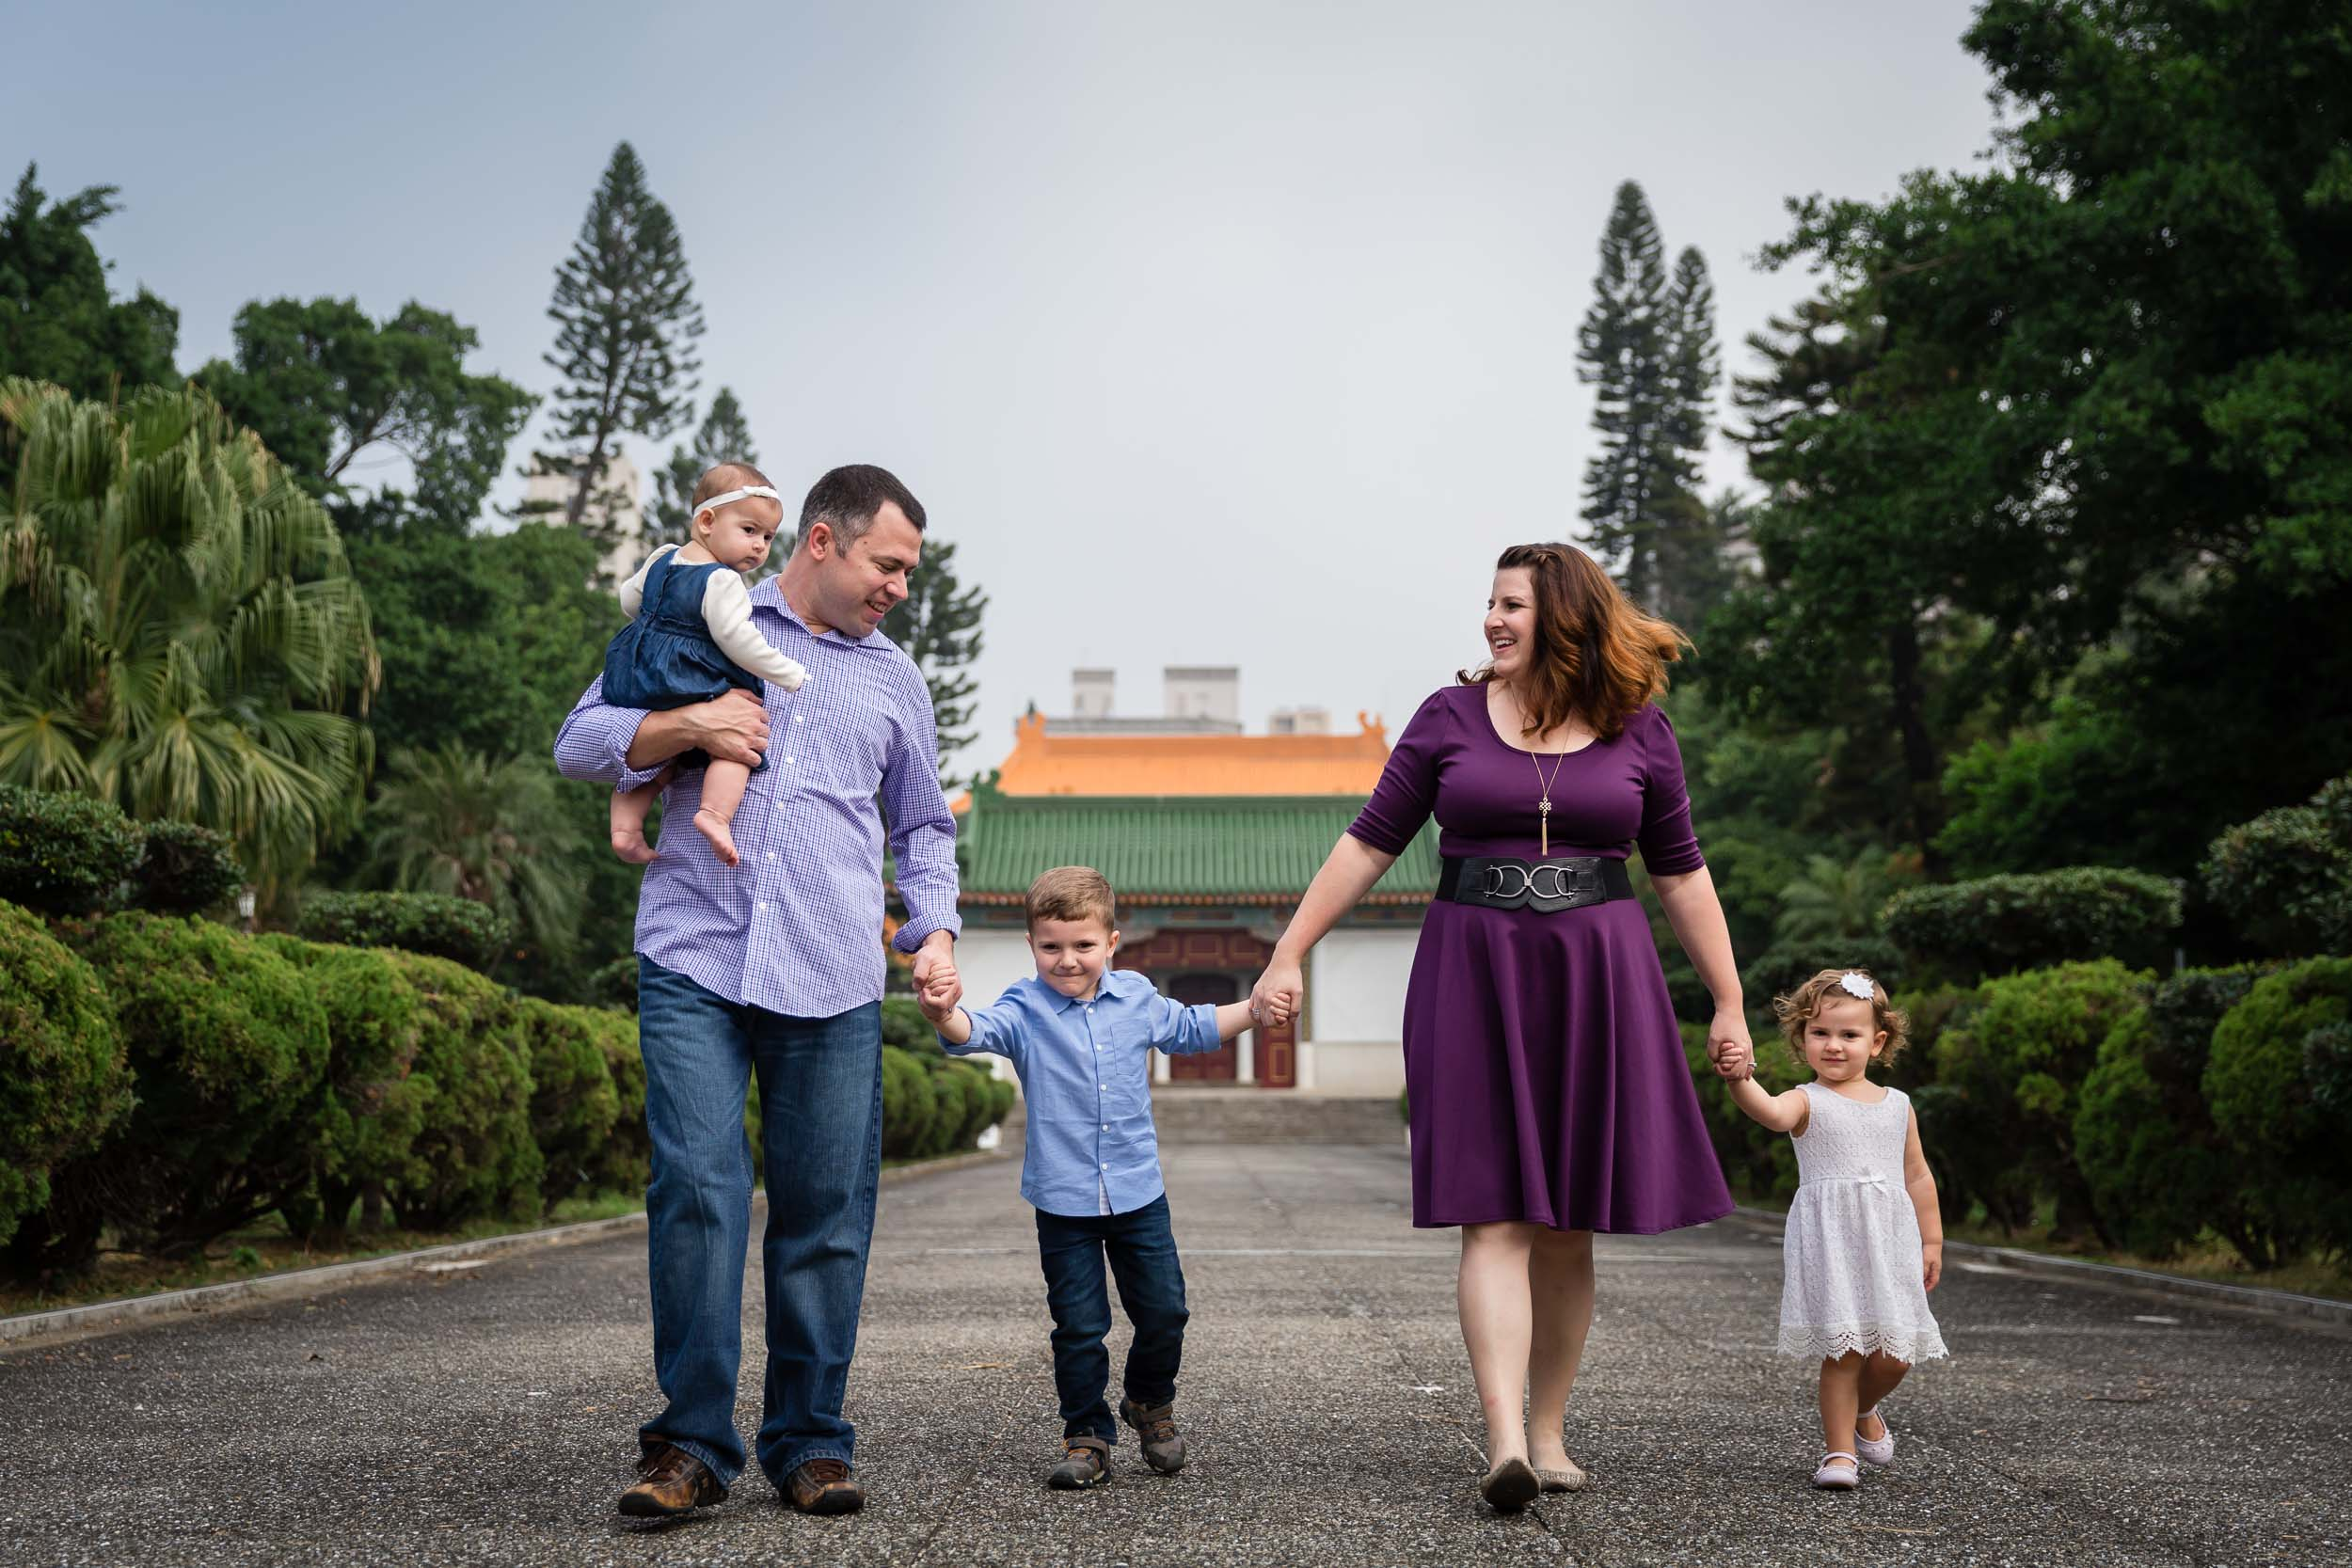 family of five with mom in purple dress and baby in jean jumper exploring by hunnicutt photography portland oregon and pacific northwest premiere child and family lifestyle photographer